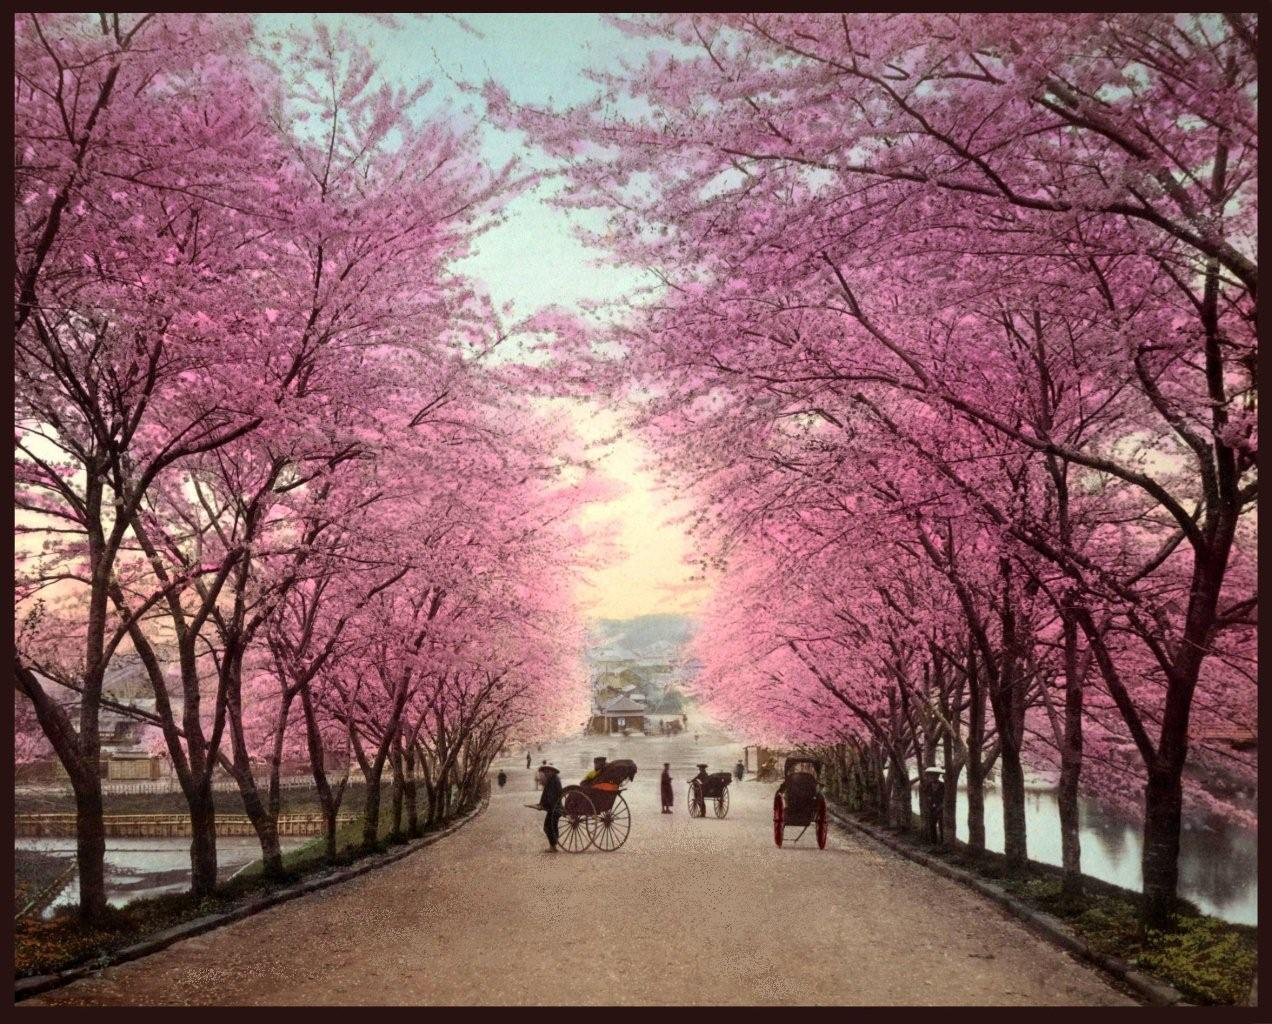 In the land of cherry blossoms